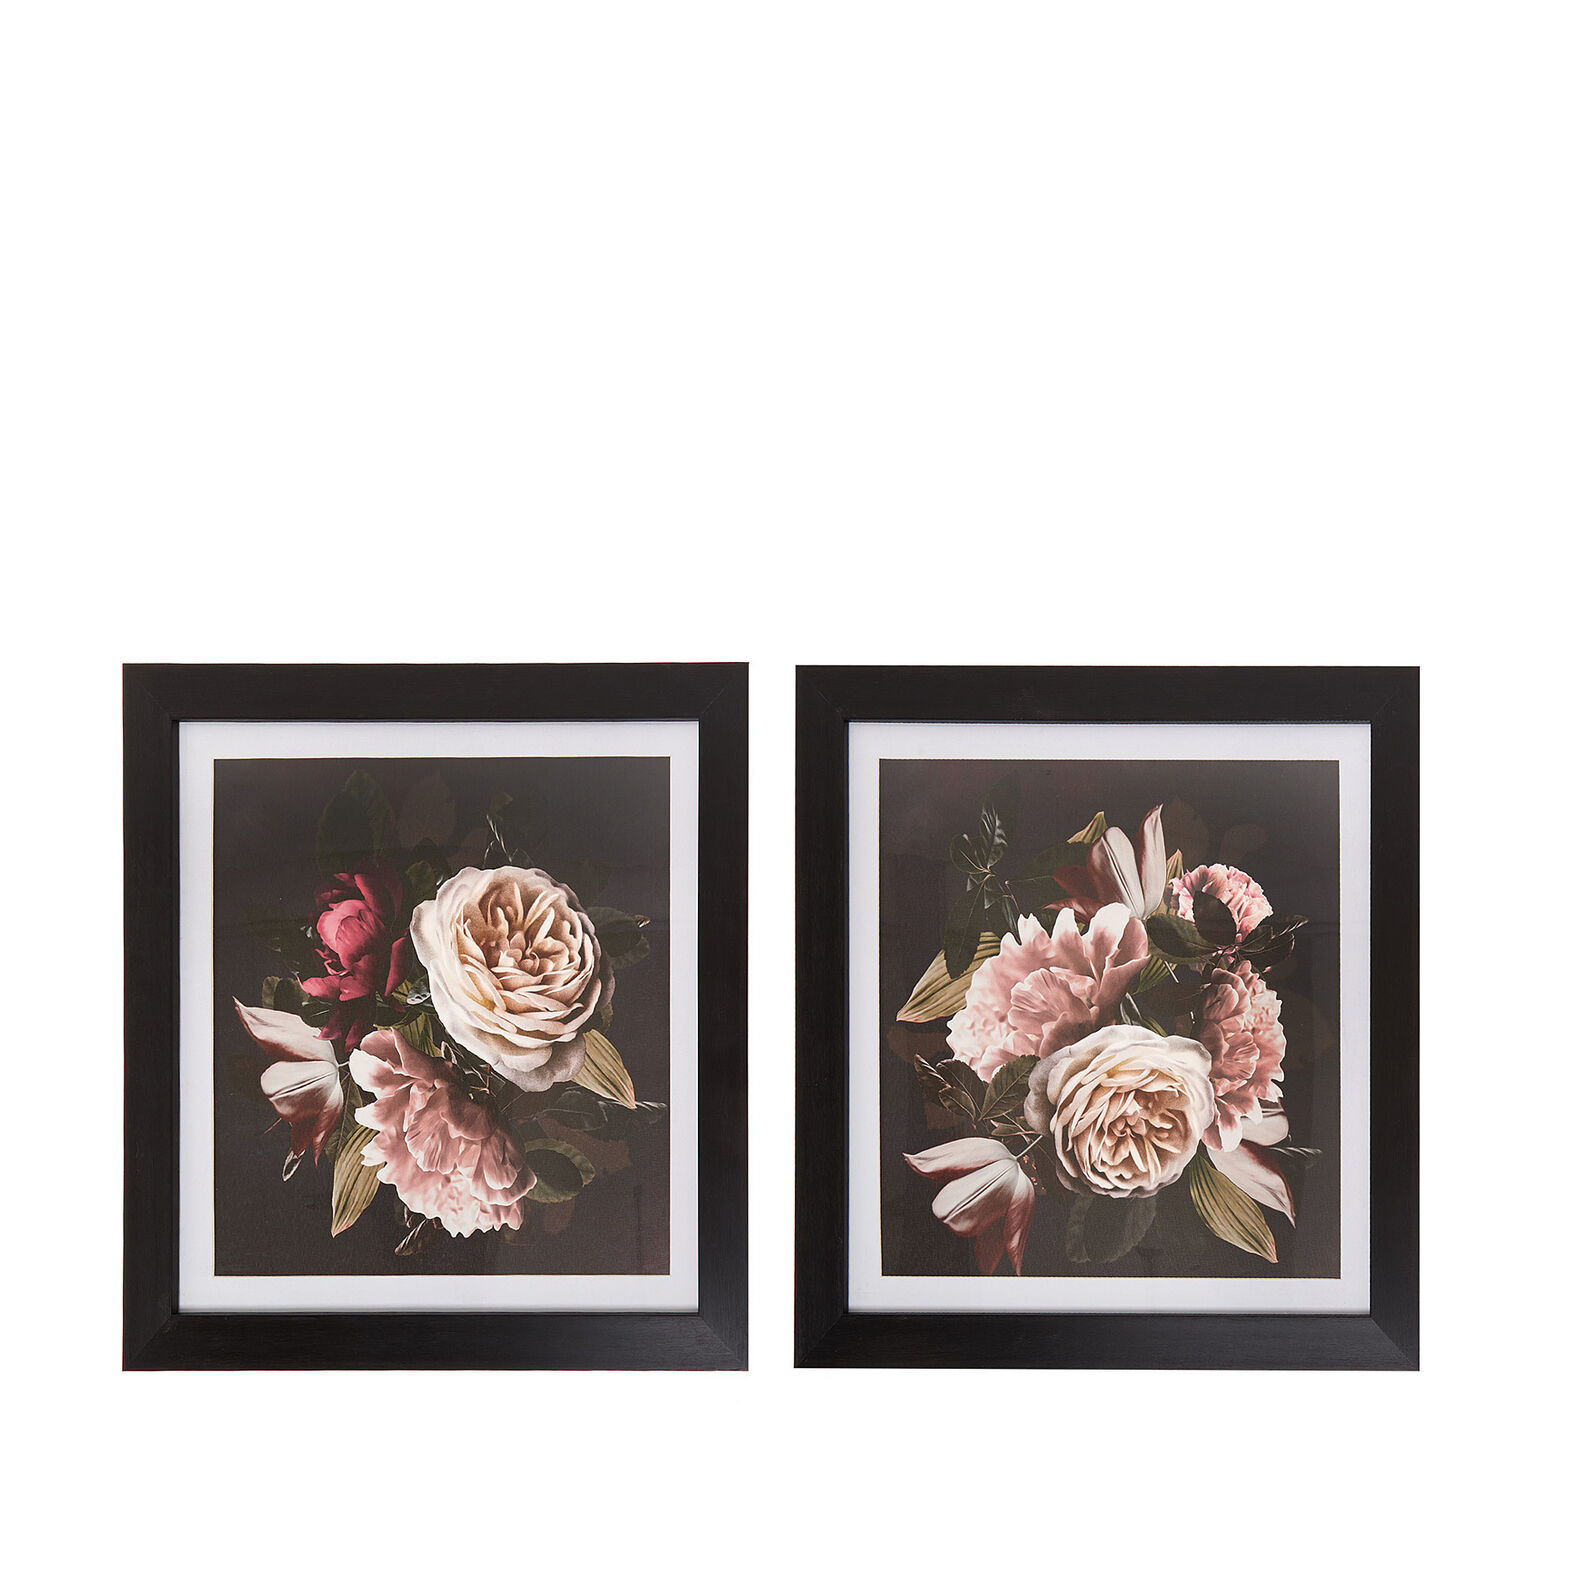 Picture with floral photo print